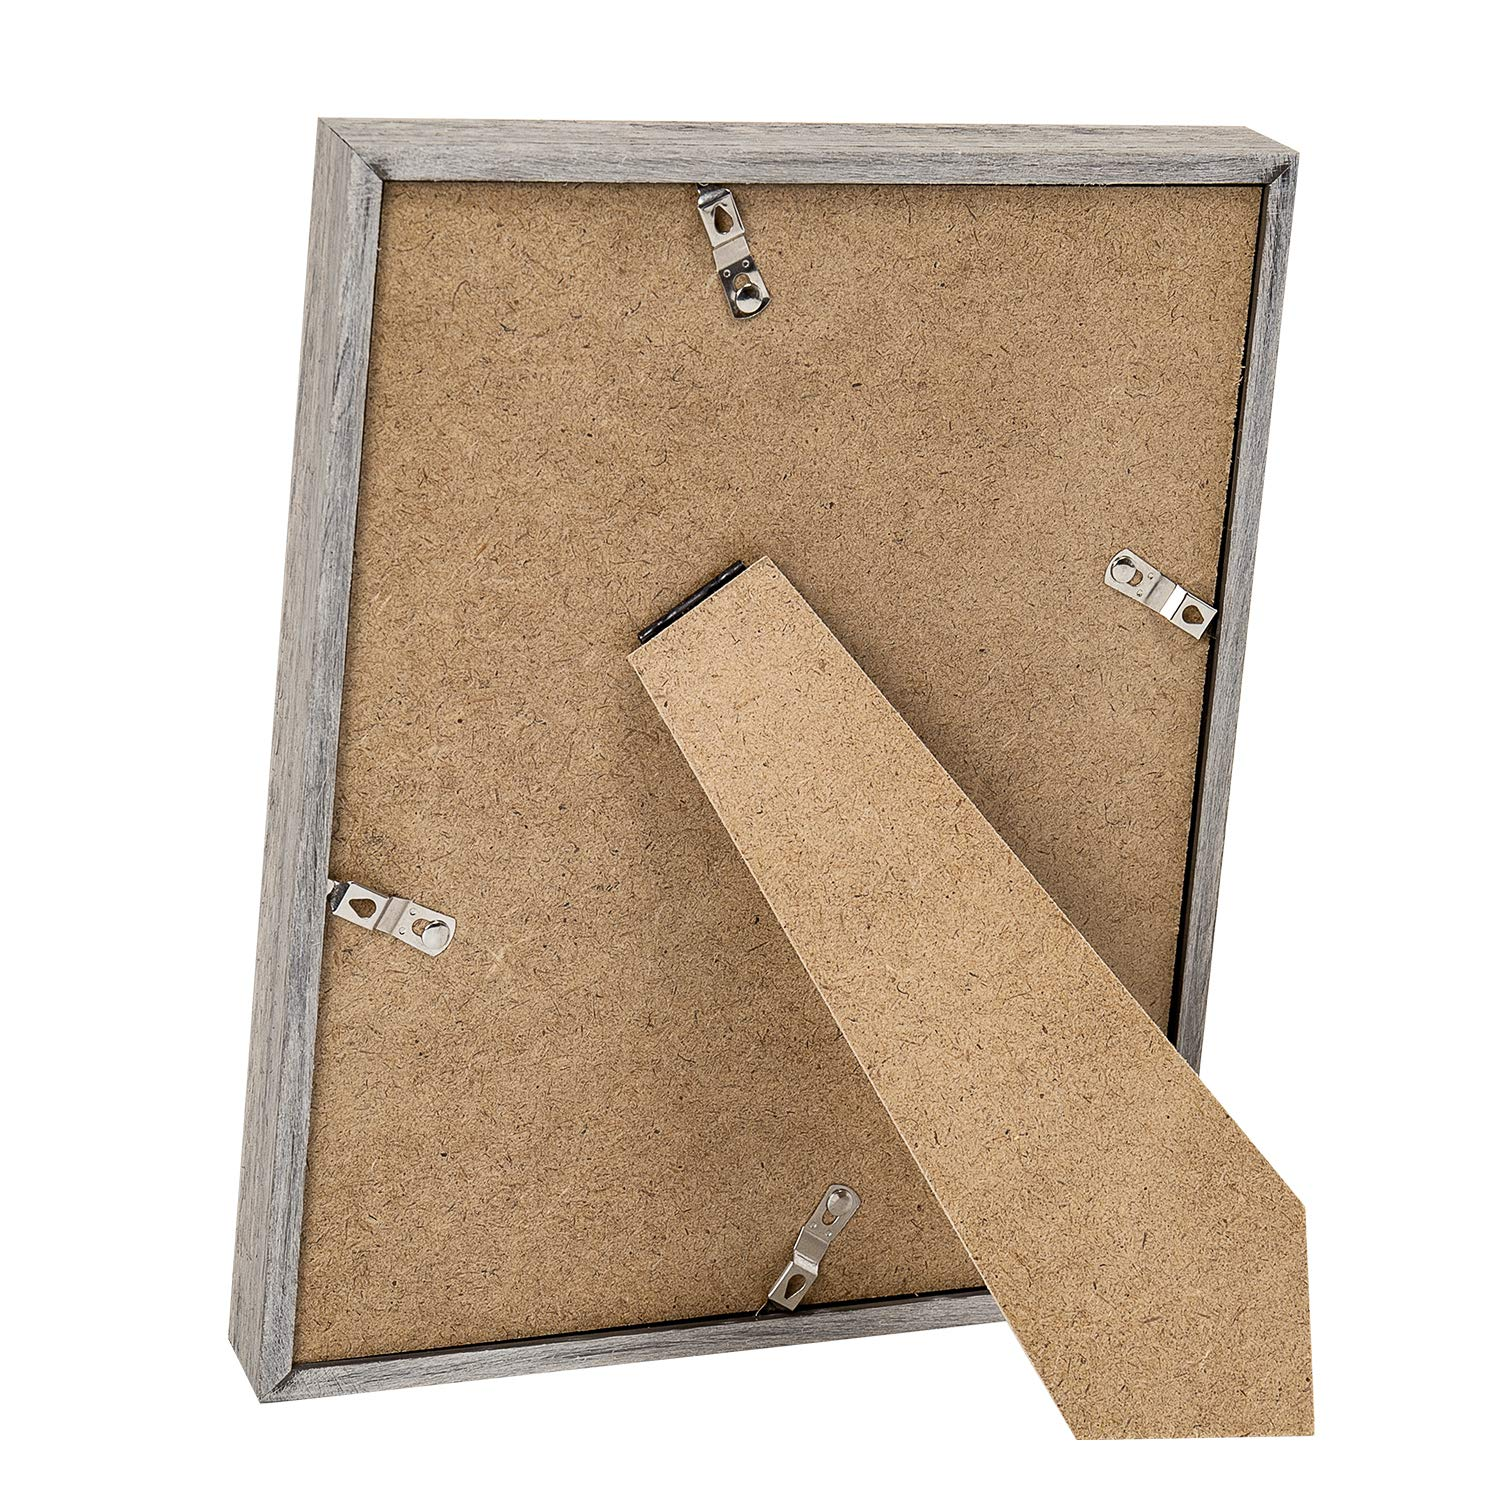 upsimples 8x10 Picture Frame with Real Glass and Mat,Rustic Photo Frames for Wall or Tabletop Display,Set of 5 by upsimples (Image #5)